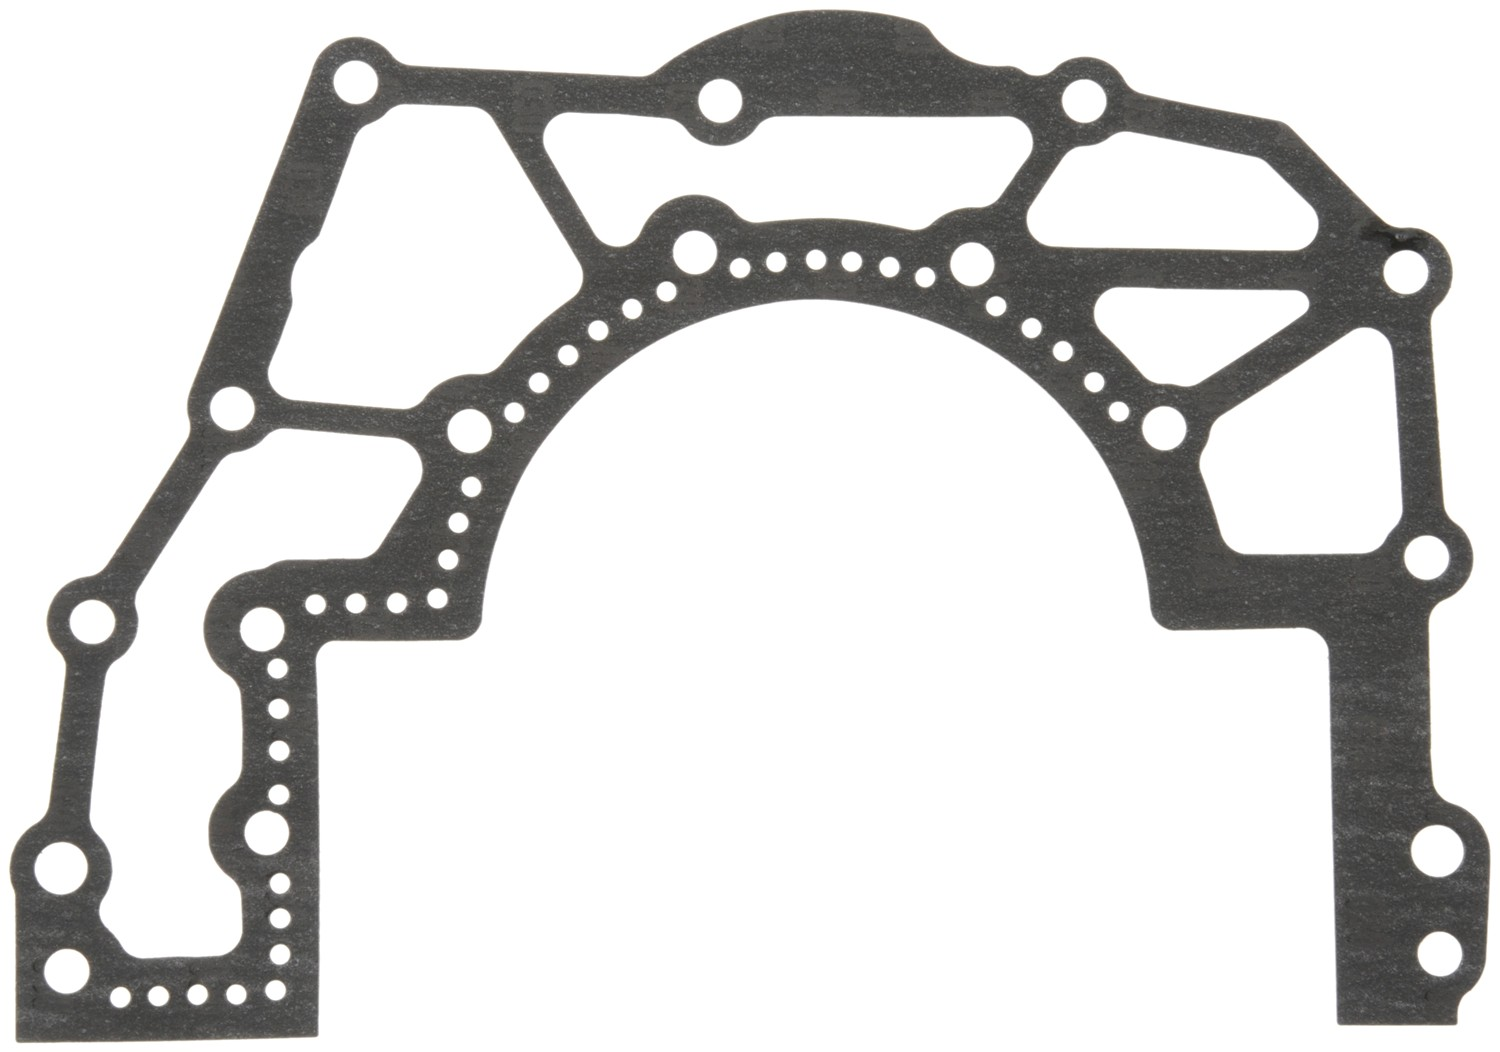 Victor B Engine Crankshaft Seal Retainer Gasket